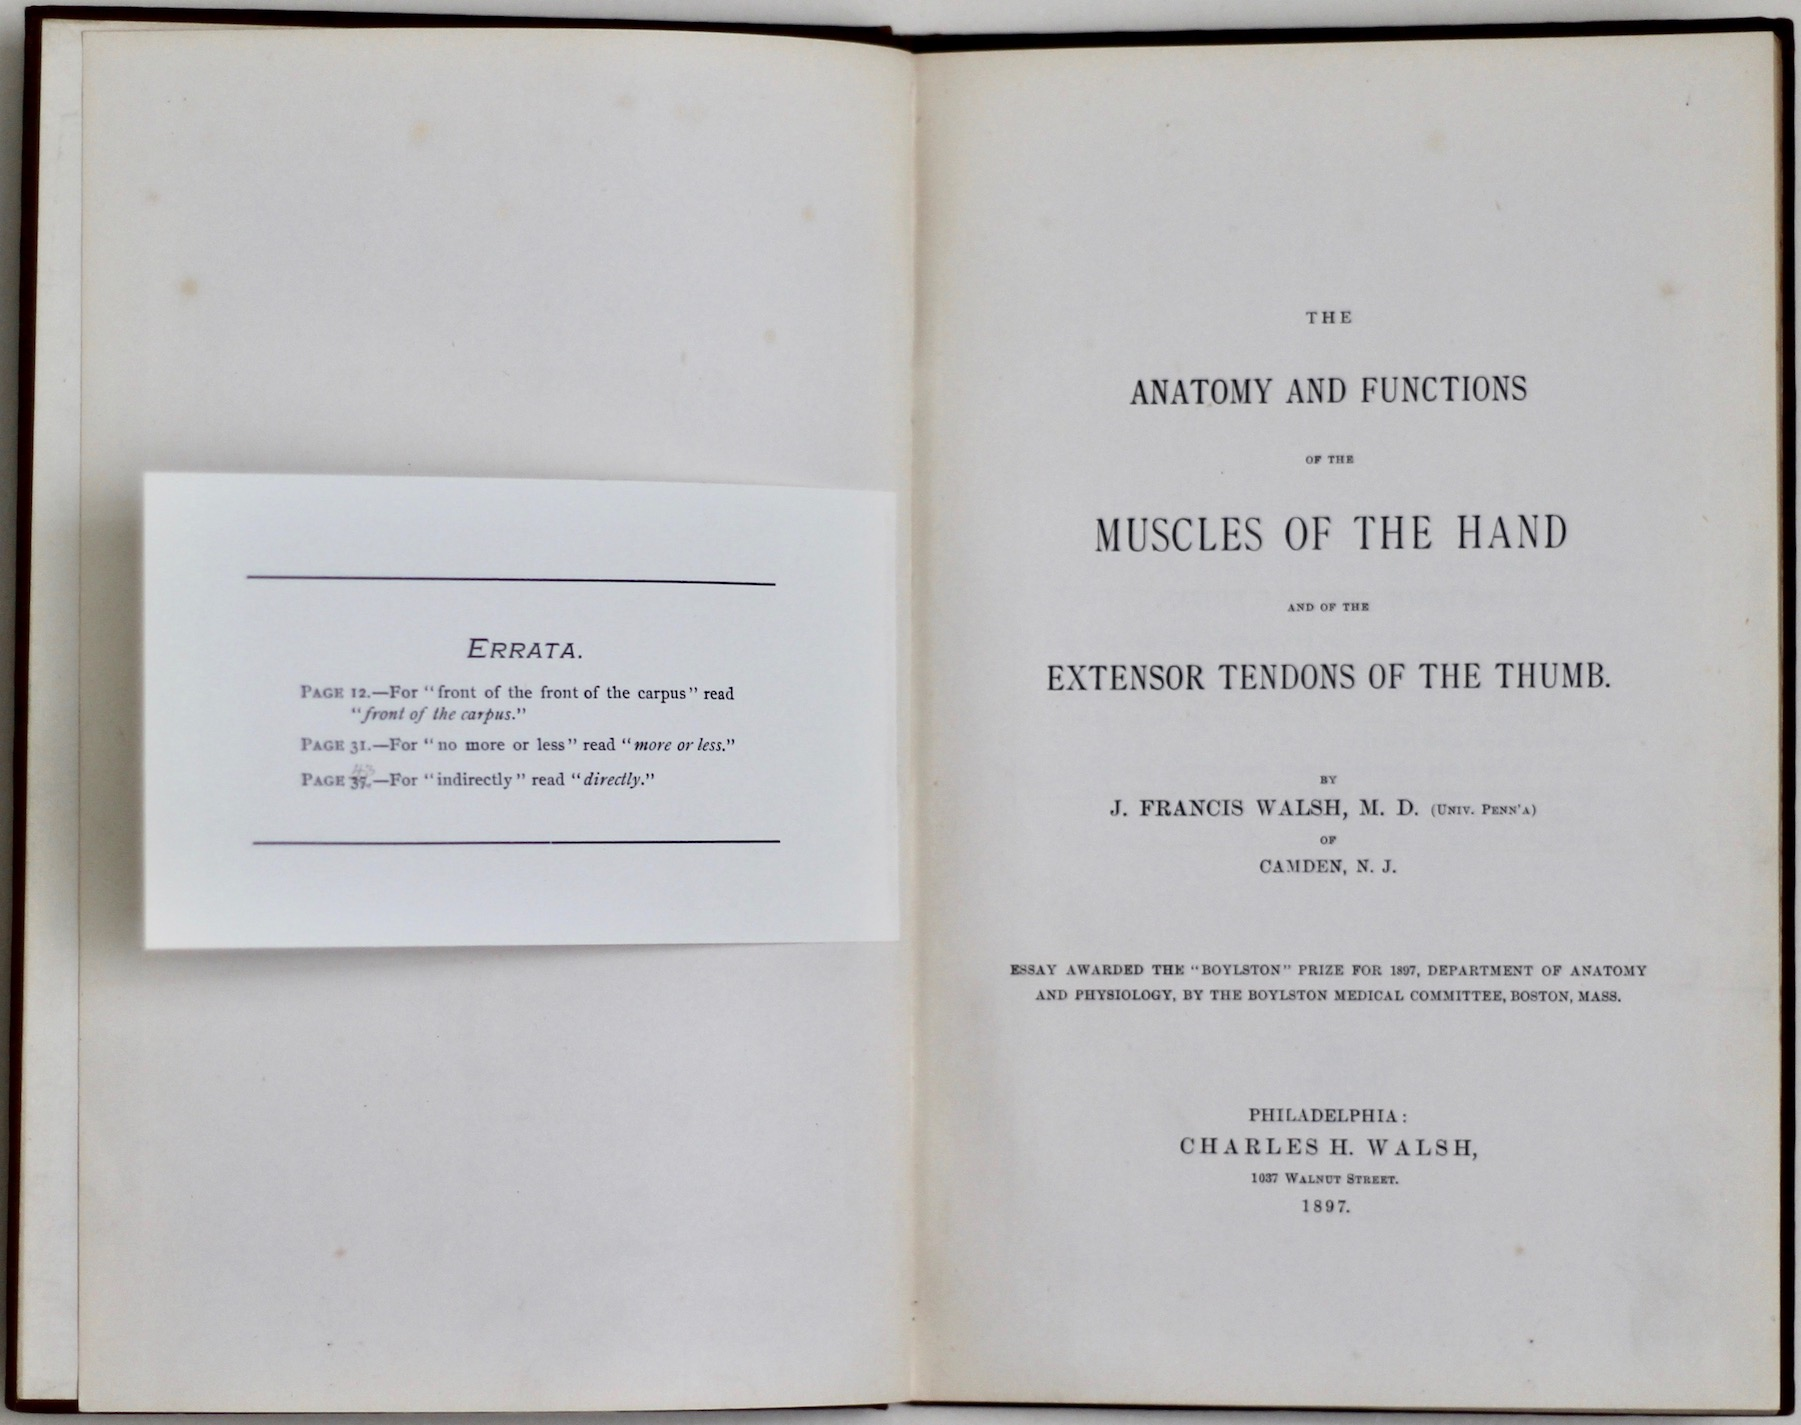 J. Francis Walsh: The Anatomy and Functions of the Muscles of the Hand, 1897 – inscribed. £150